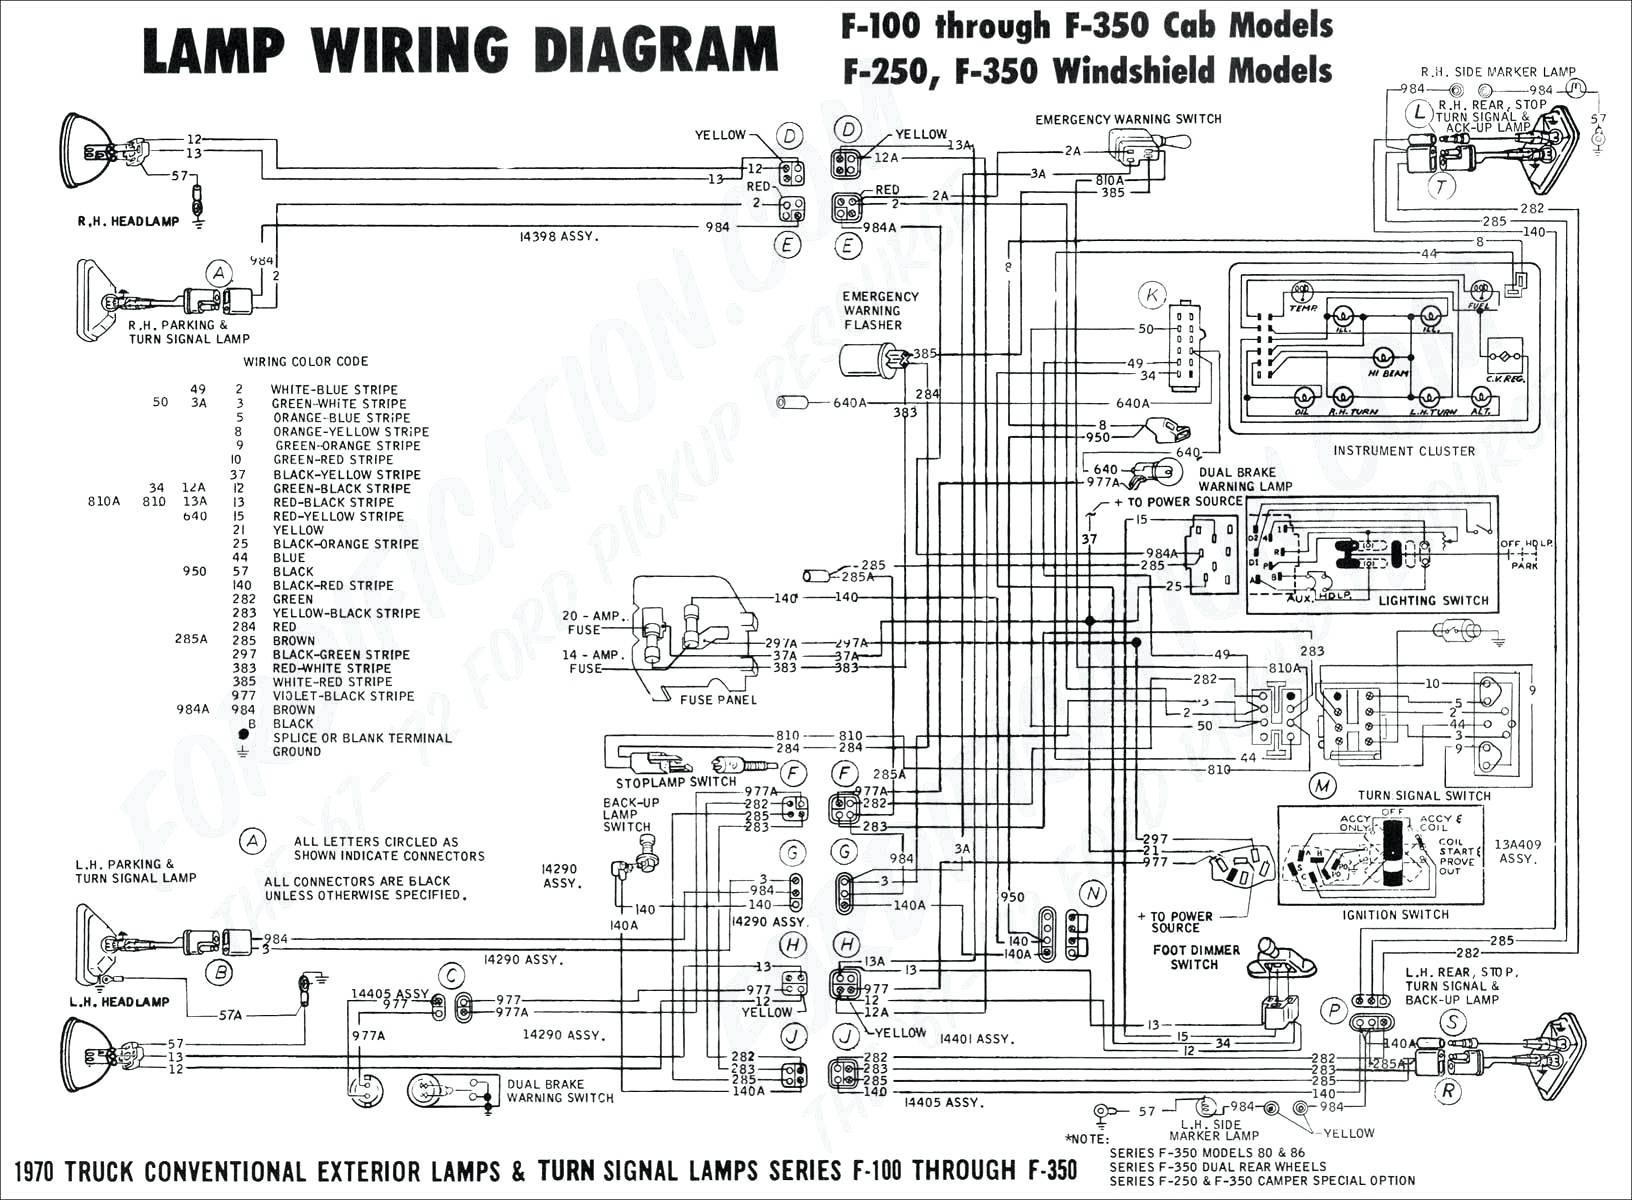 Turn Signal Flasher Wiring Diagram Free Download S Series Wiring Diagram Wiring Diagram Database Of Turn Signal Flasher Wiring Diagram Mga Turn Signal Wiring Diagram 15 13nualuniverse •